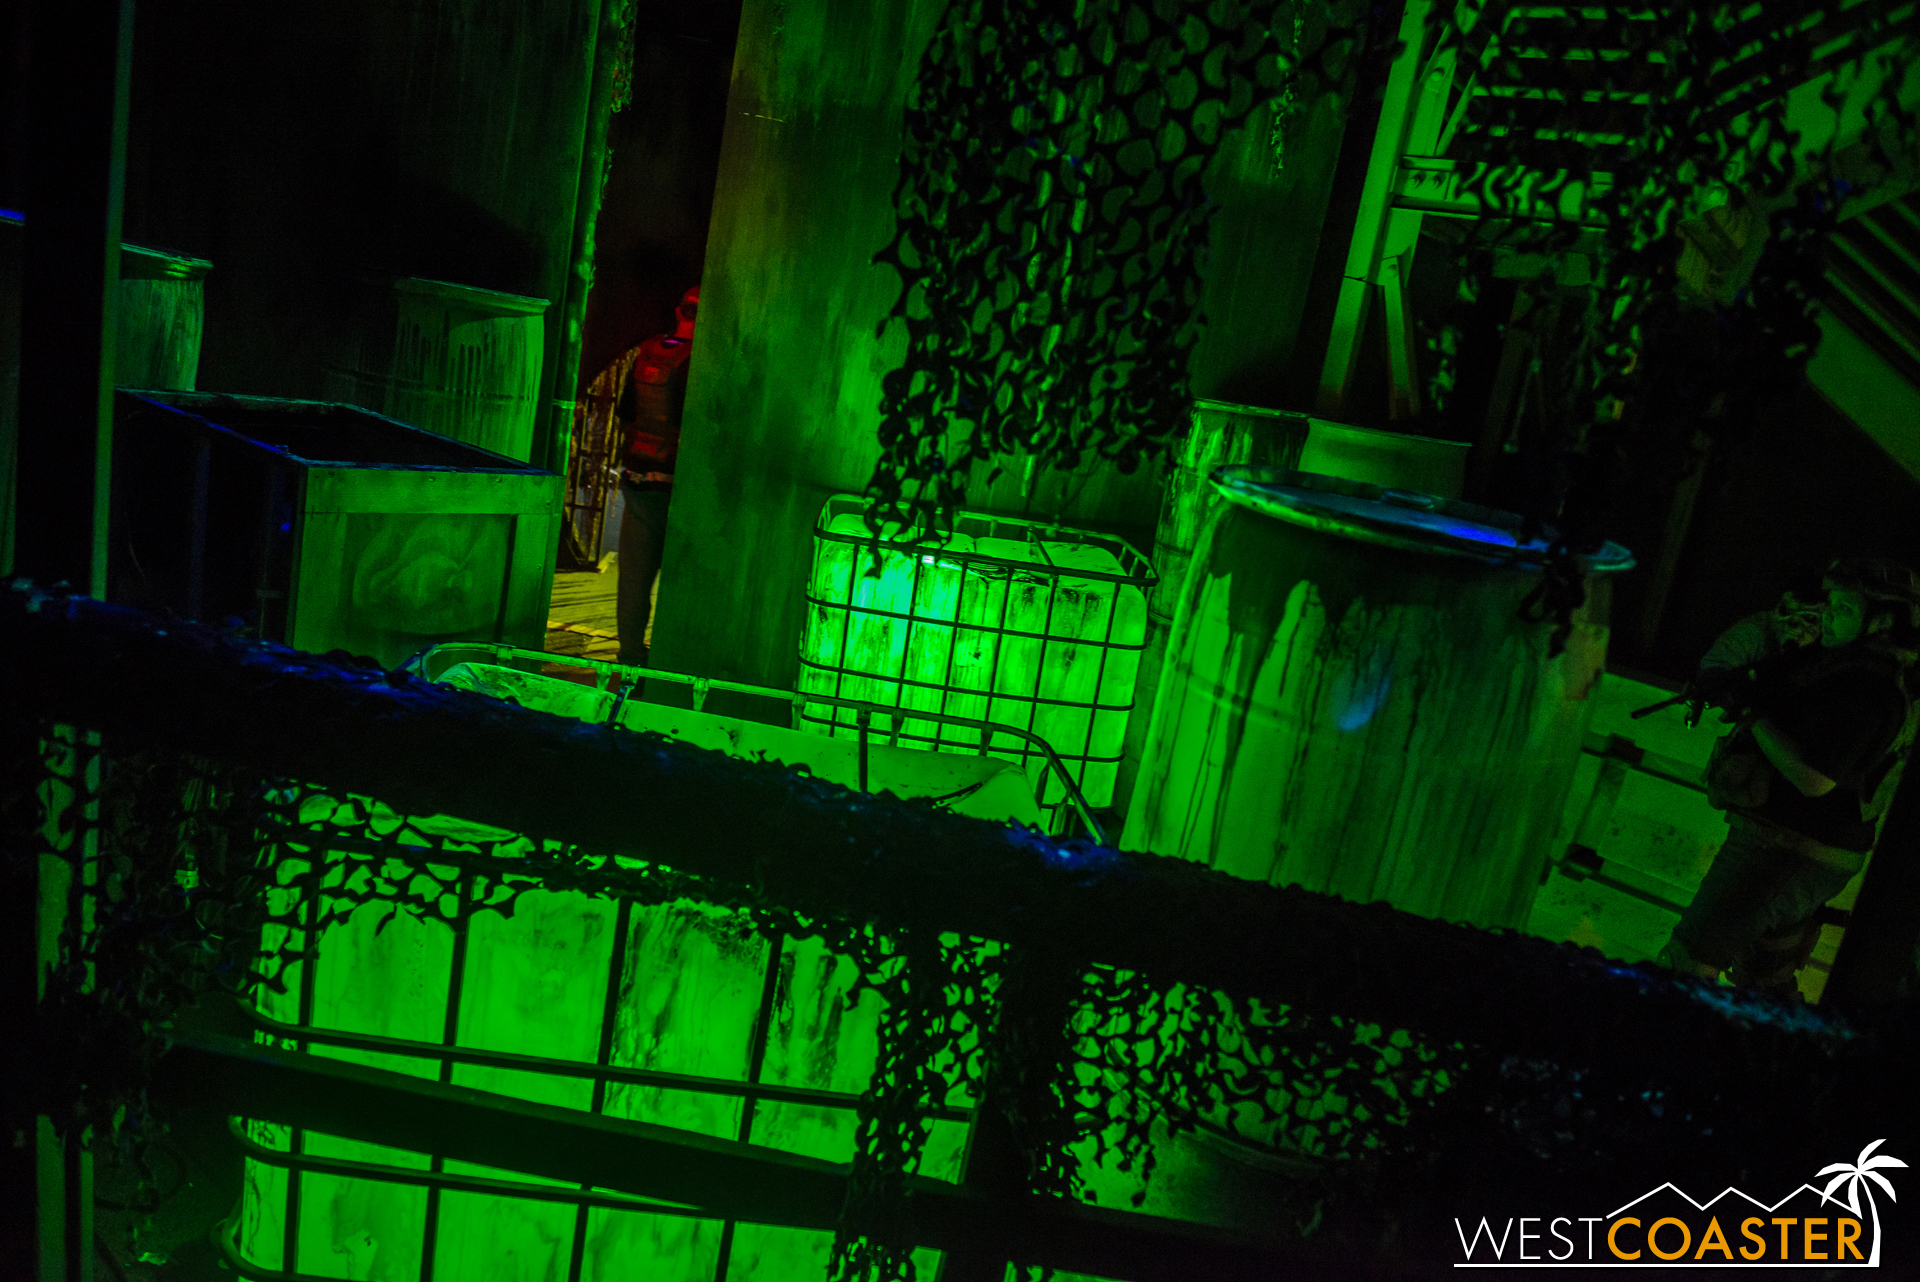 The source of the zombie outbreak lies near the end of the maze. This certainly does not look sanitary!